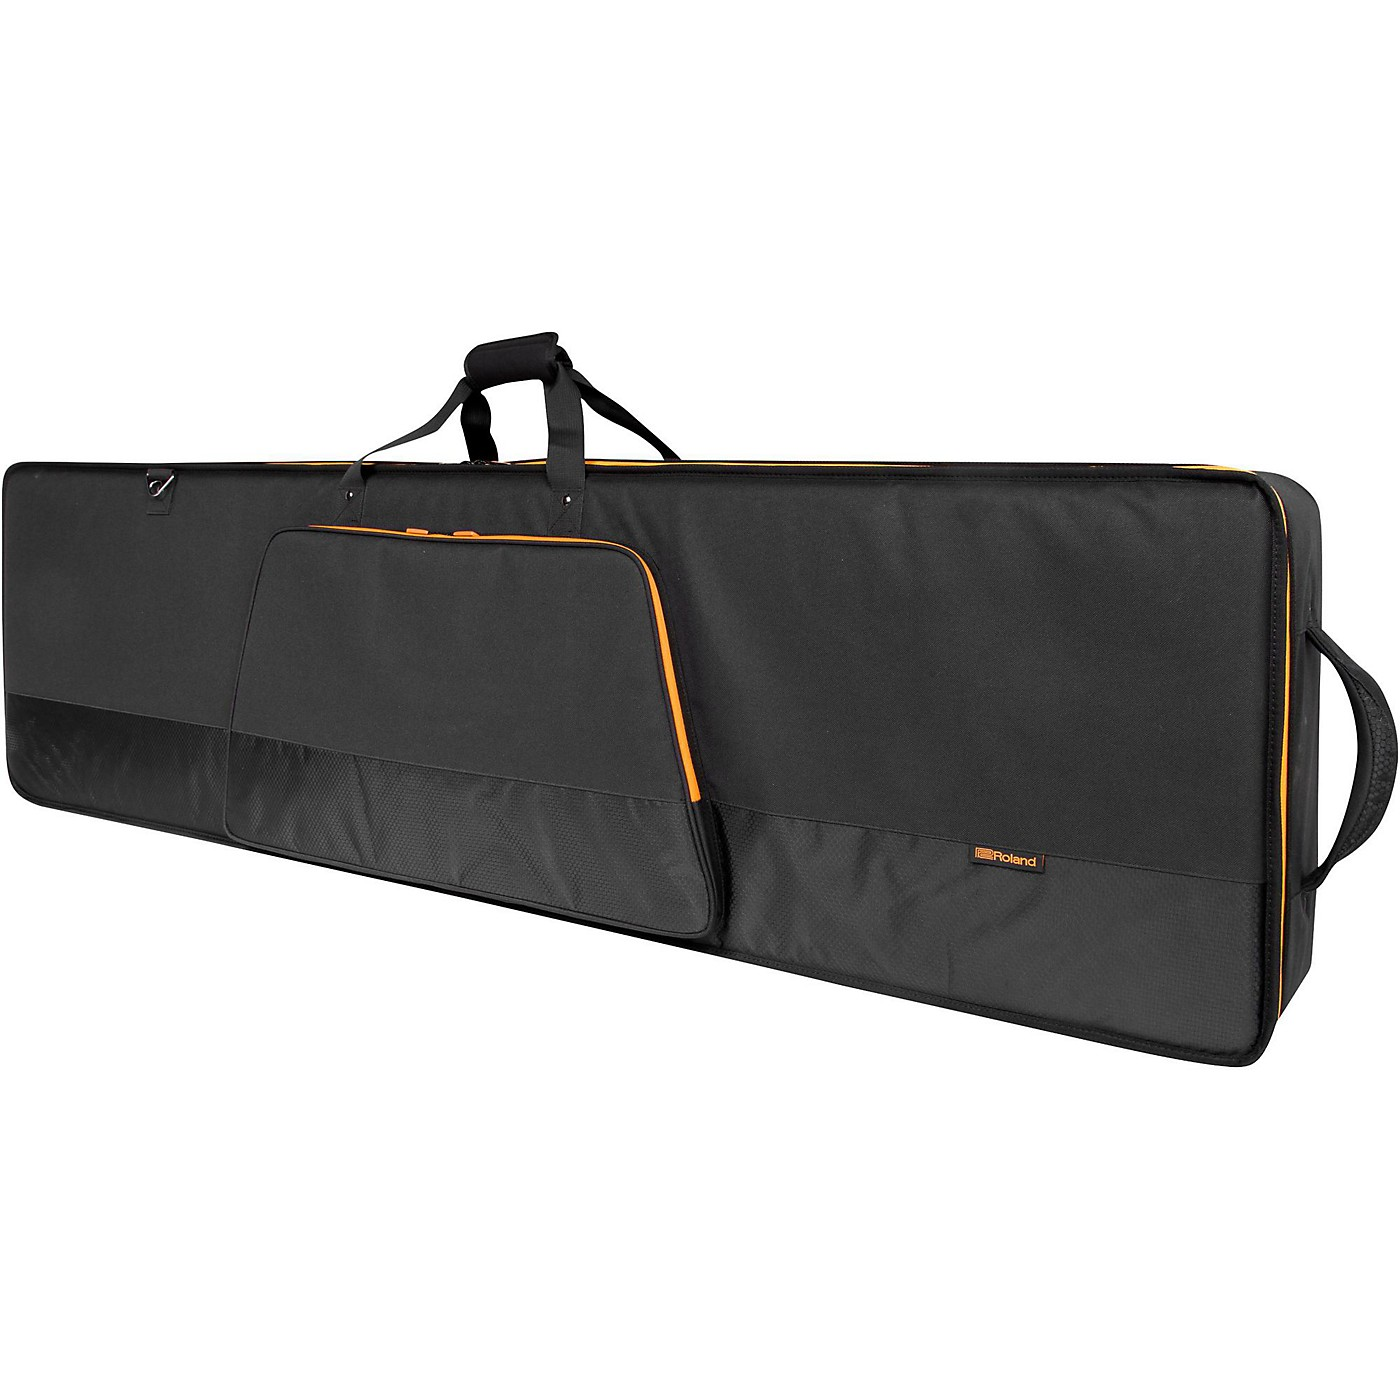 Roland Gold Series Keyboard Bag with Wheels thumbnail